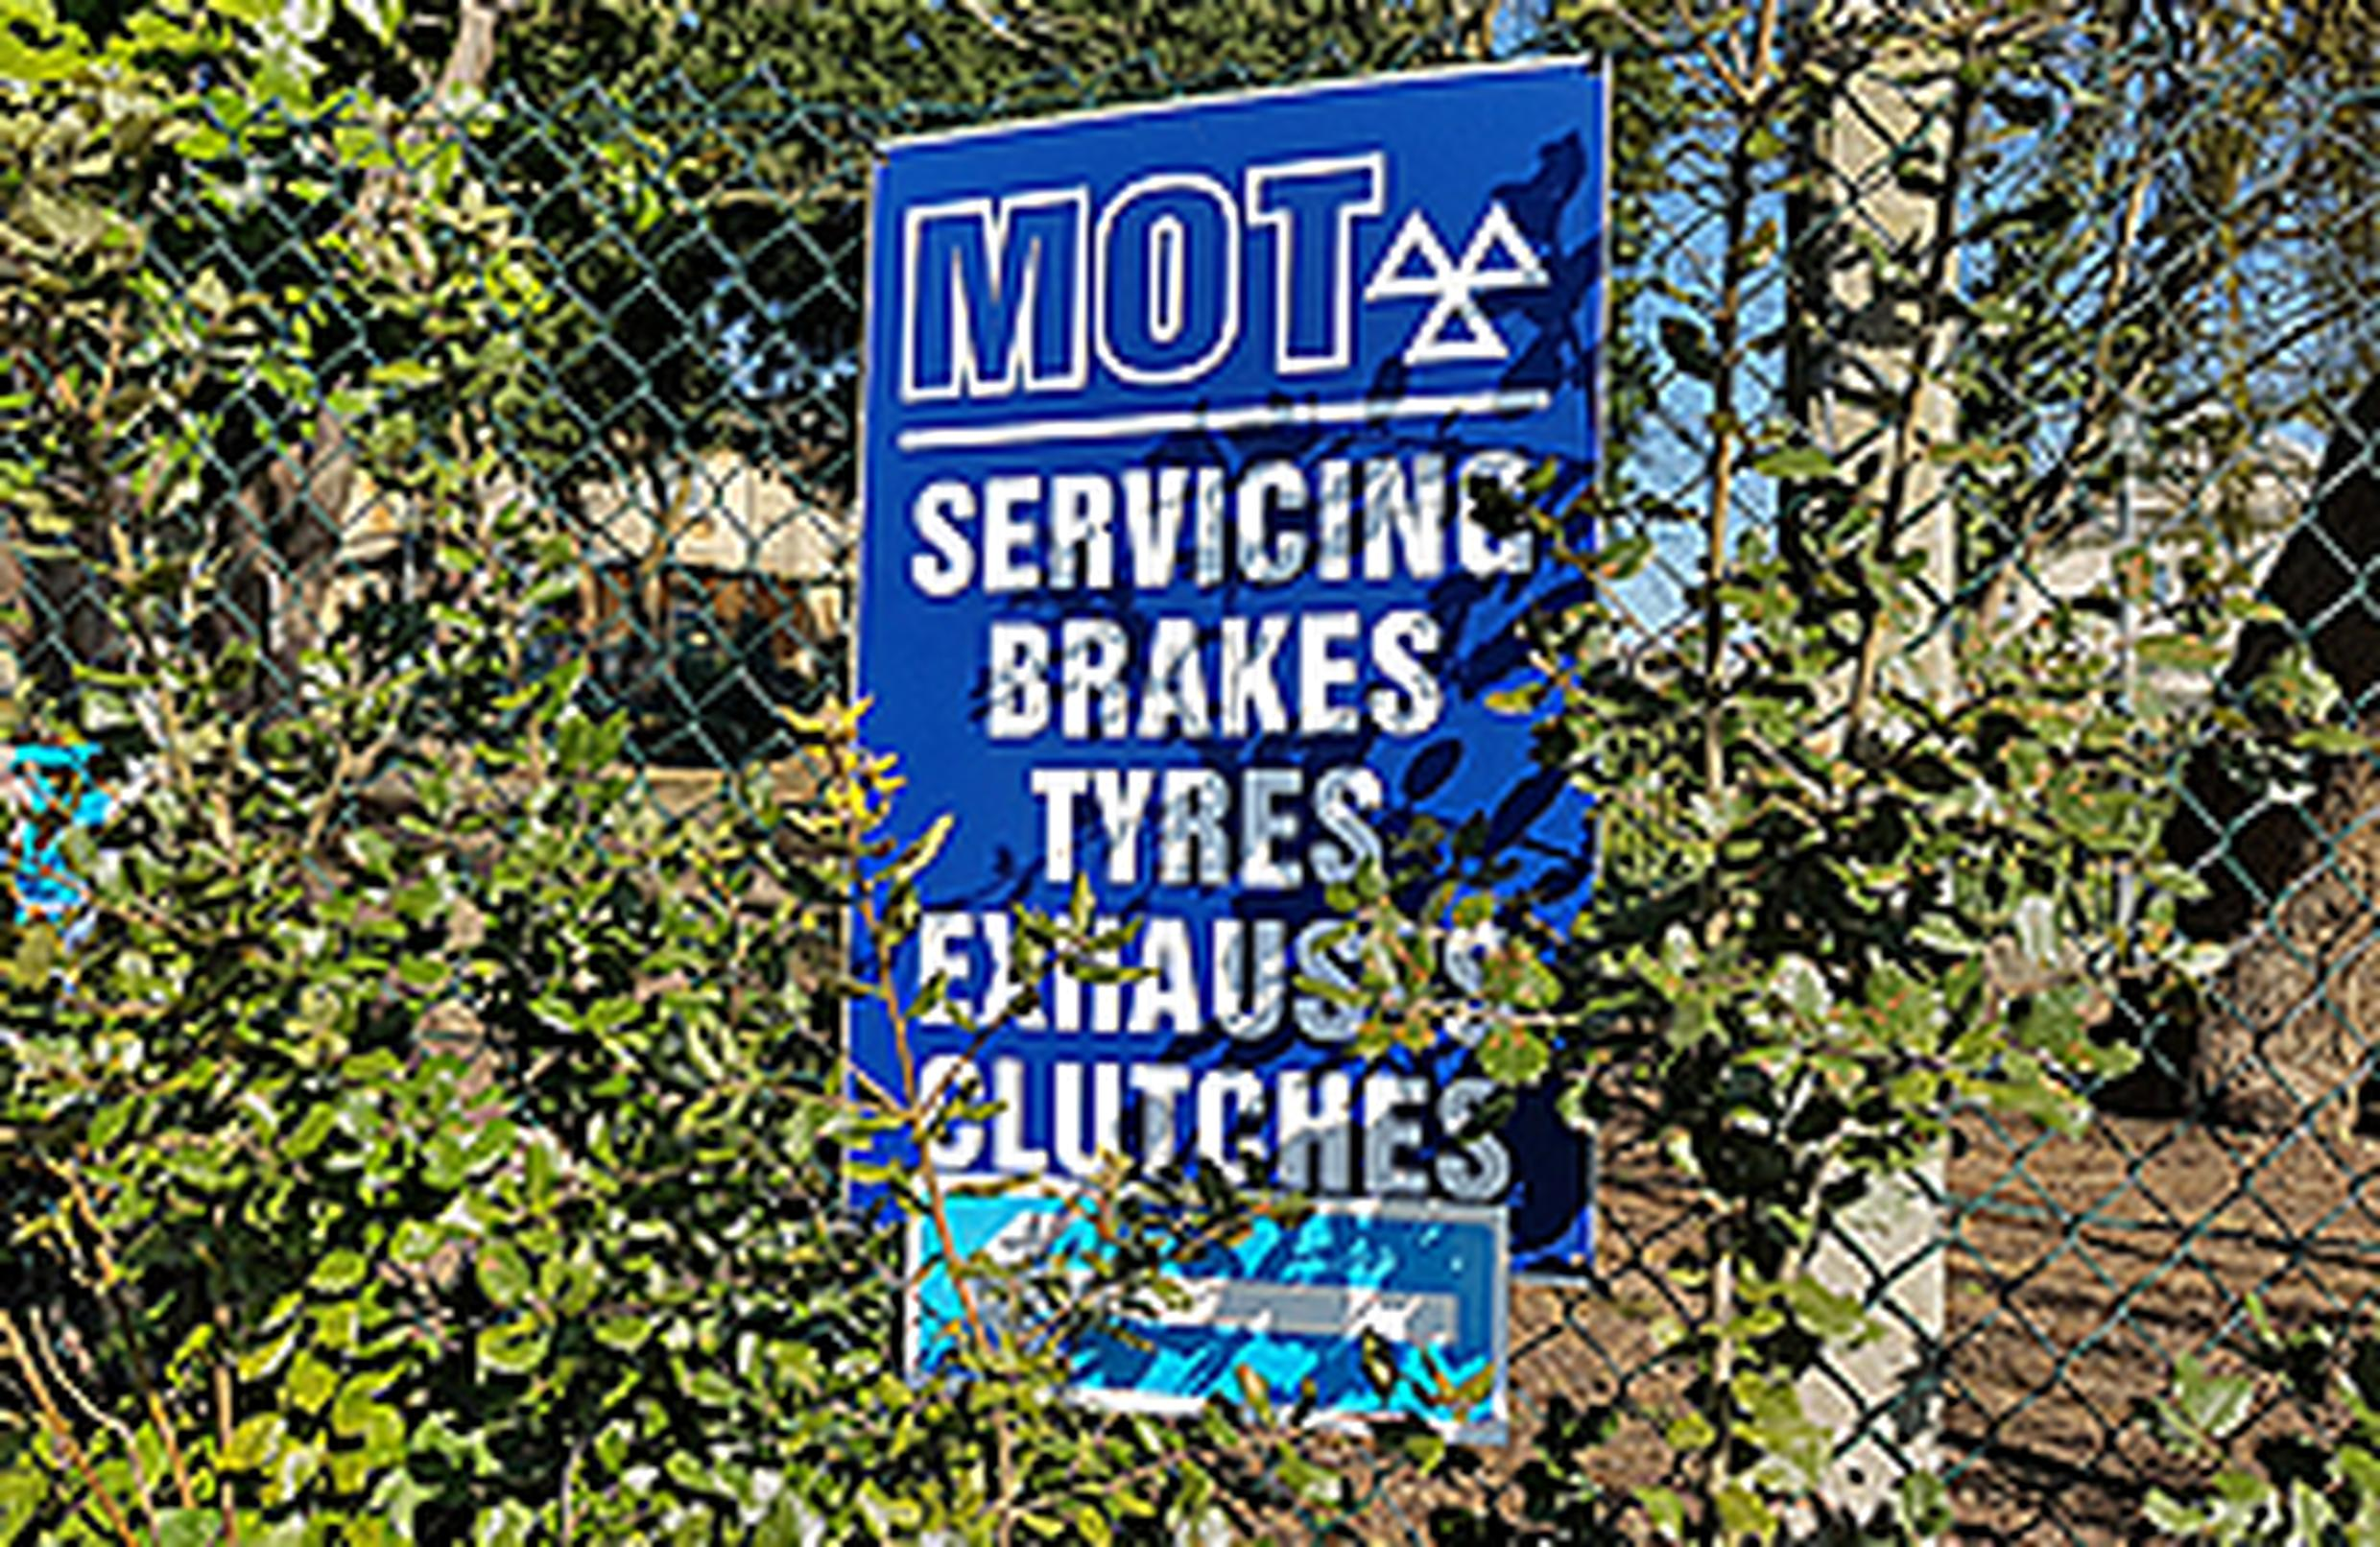 Vehicle owners will have a six-month exemption from MOT testing